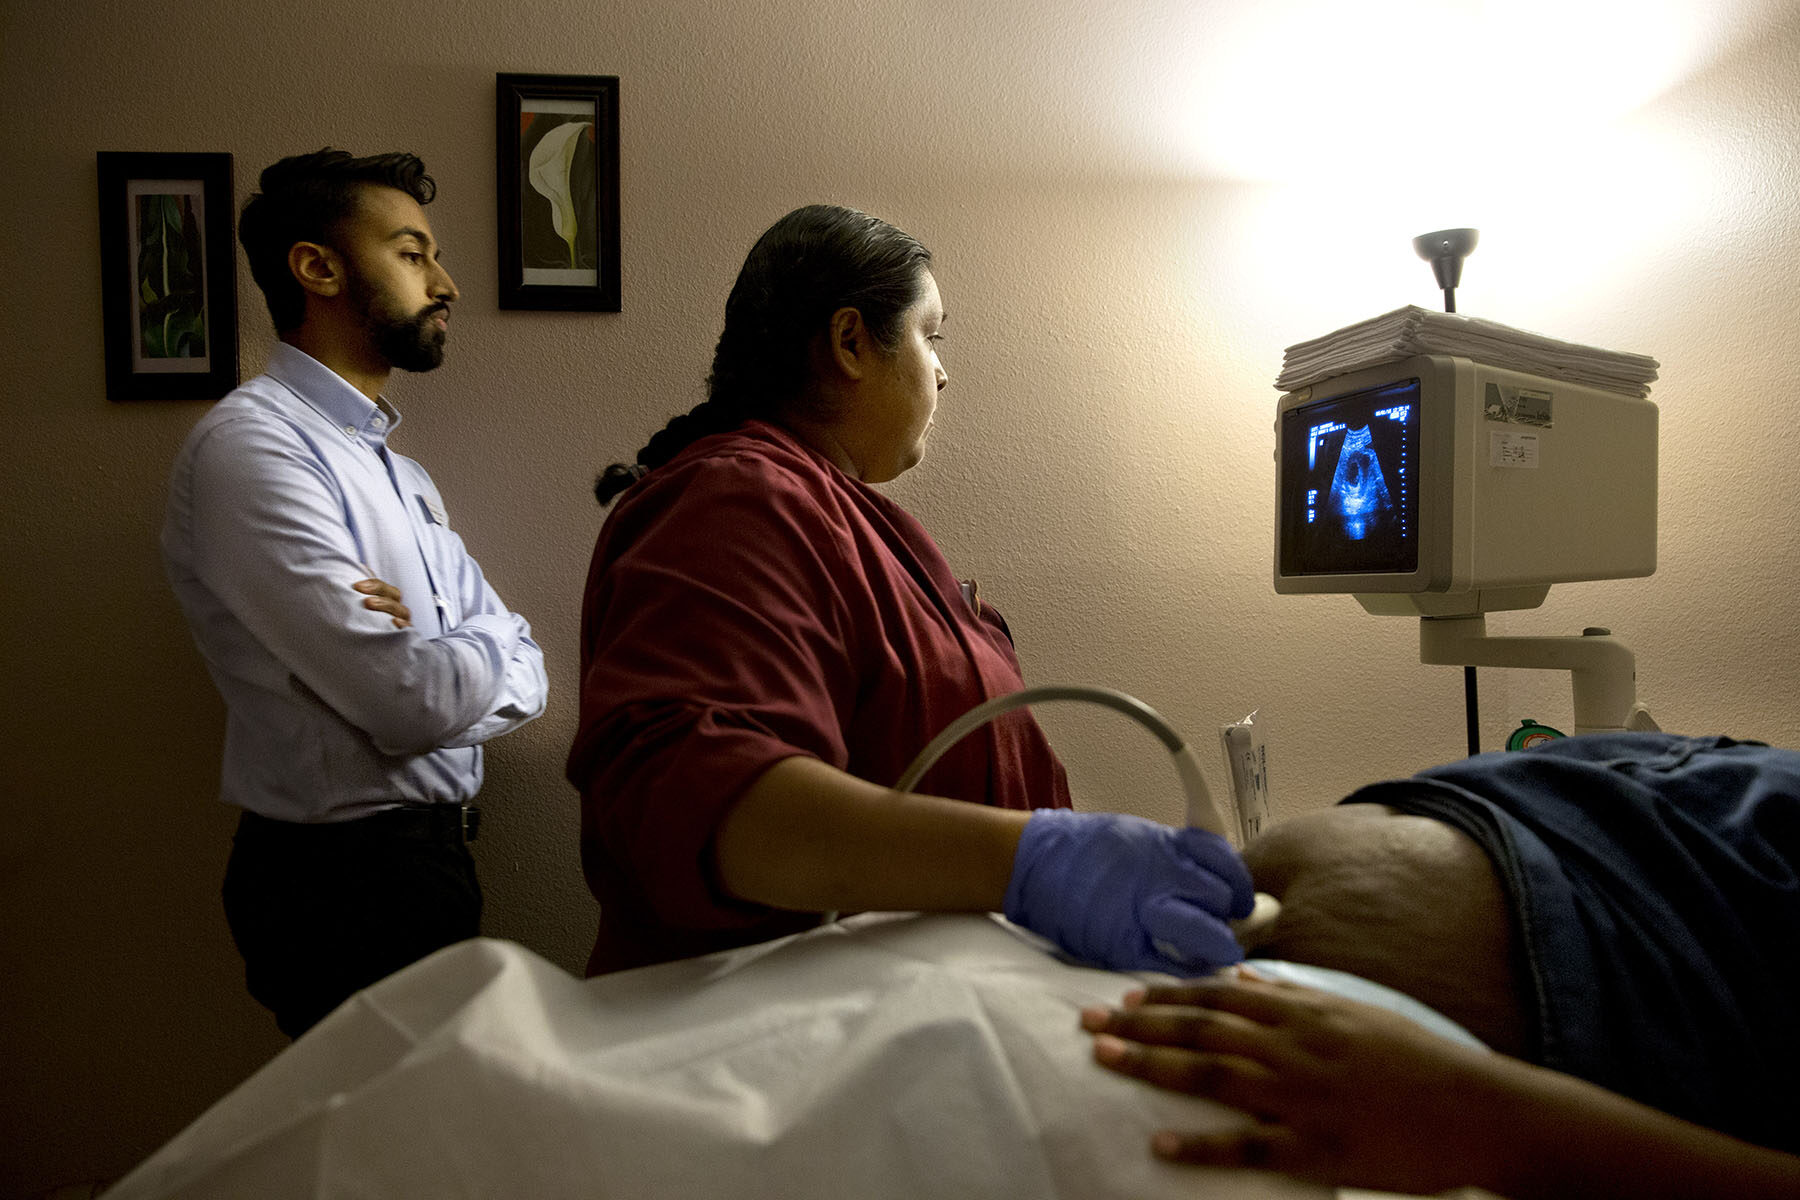 A doctor and a sonographer perform a sonogram on a pregnant patient inside an examination room.